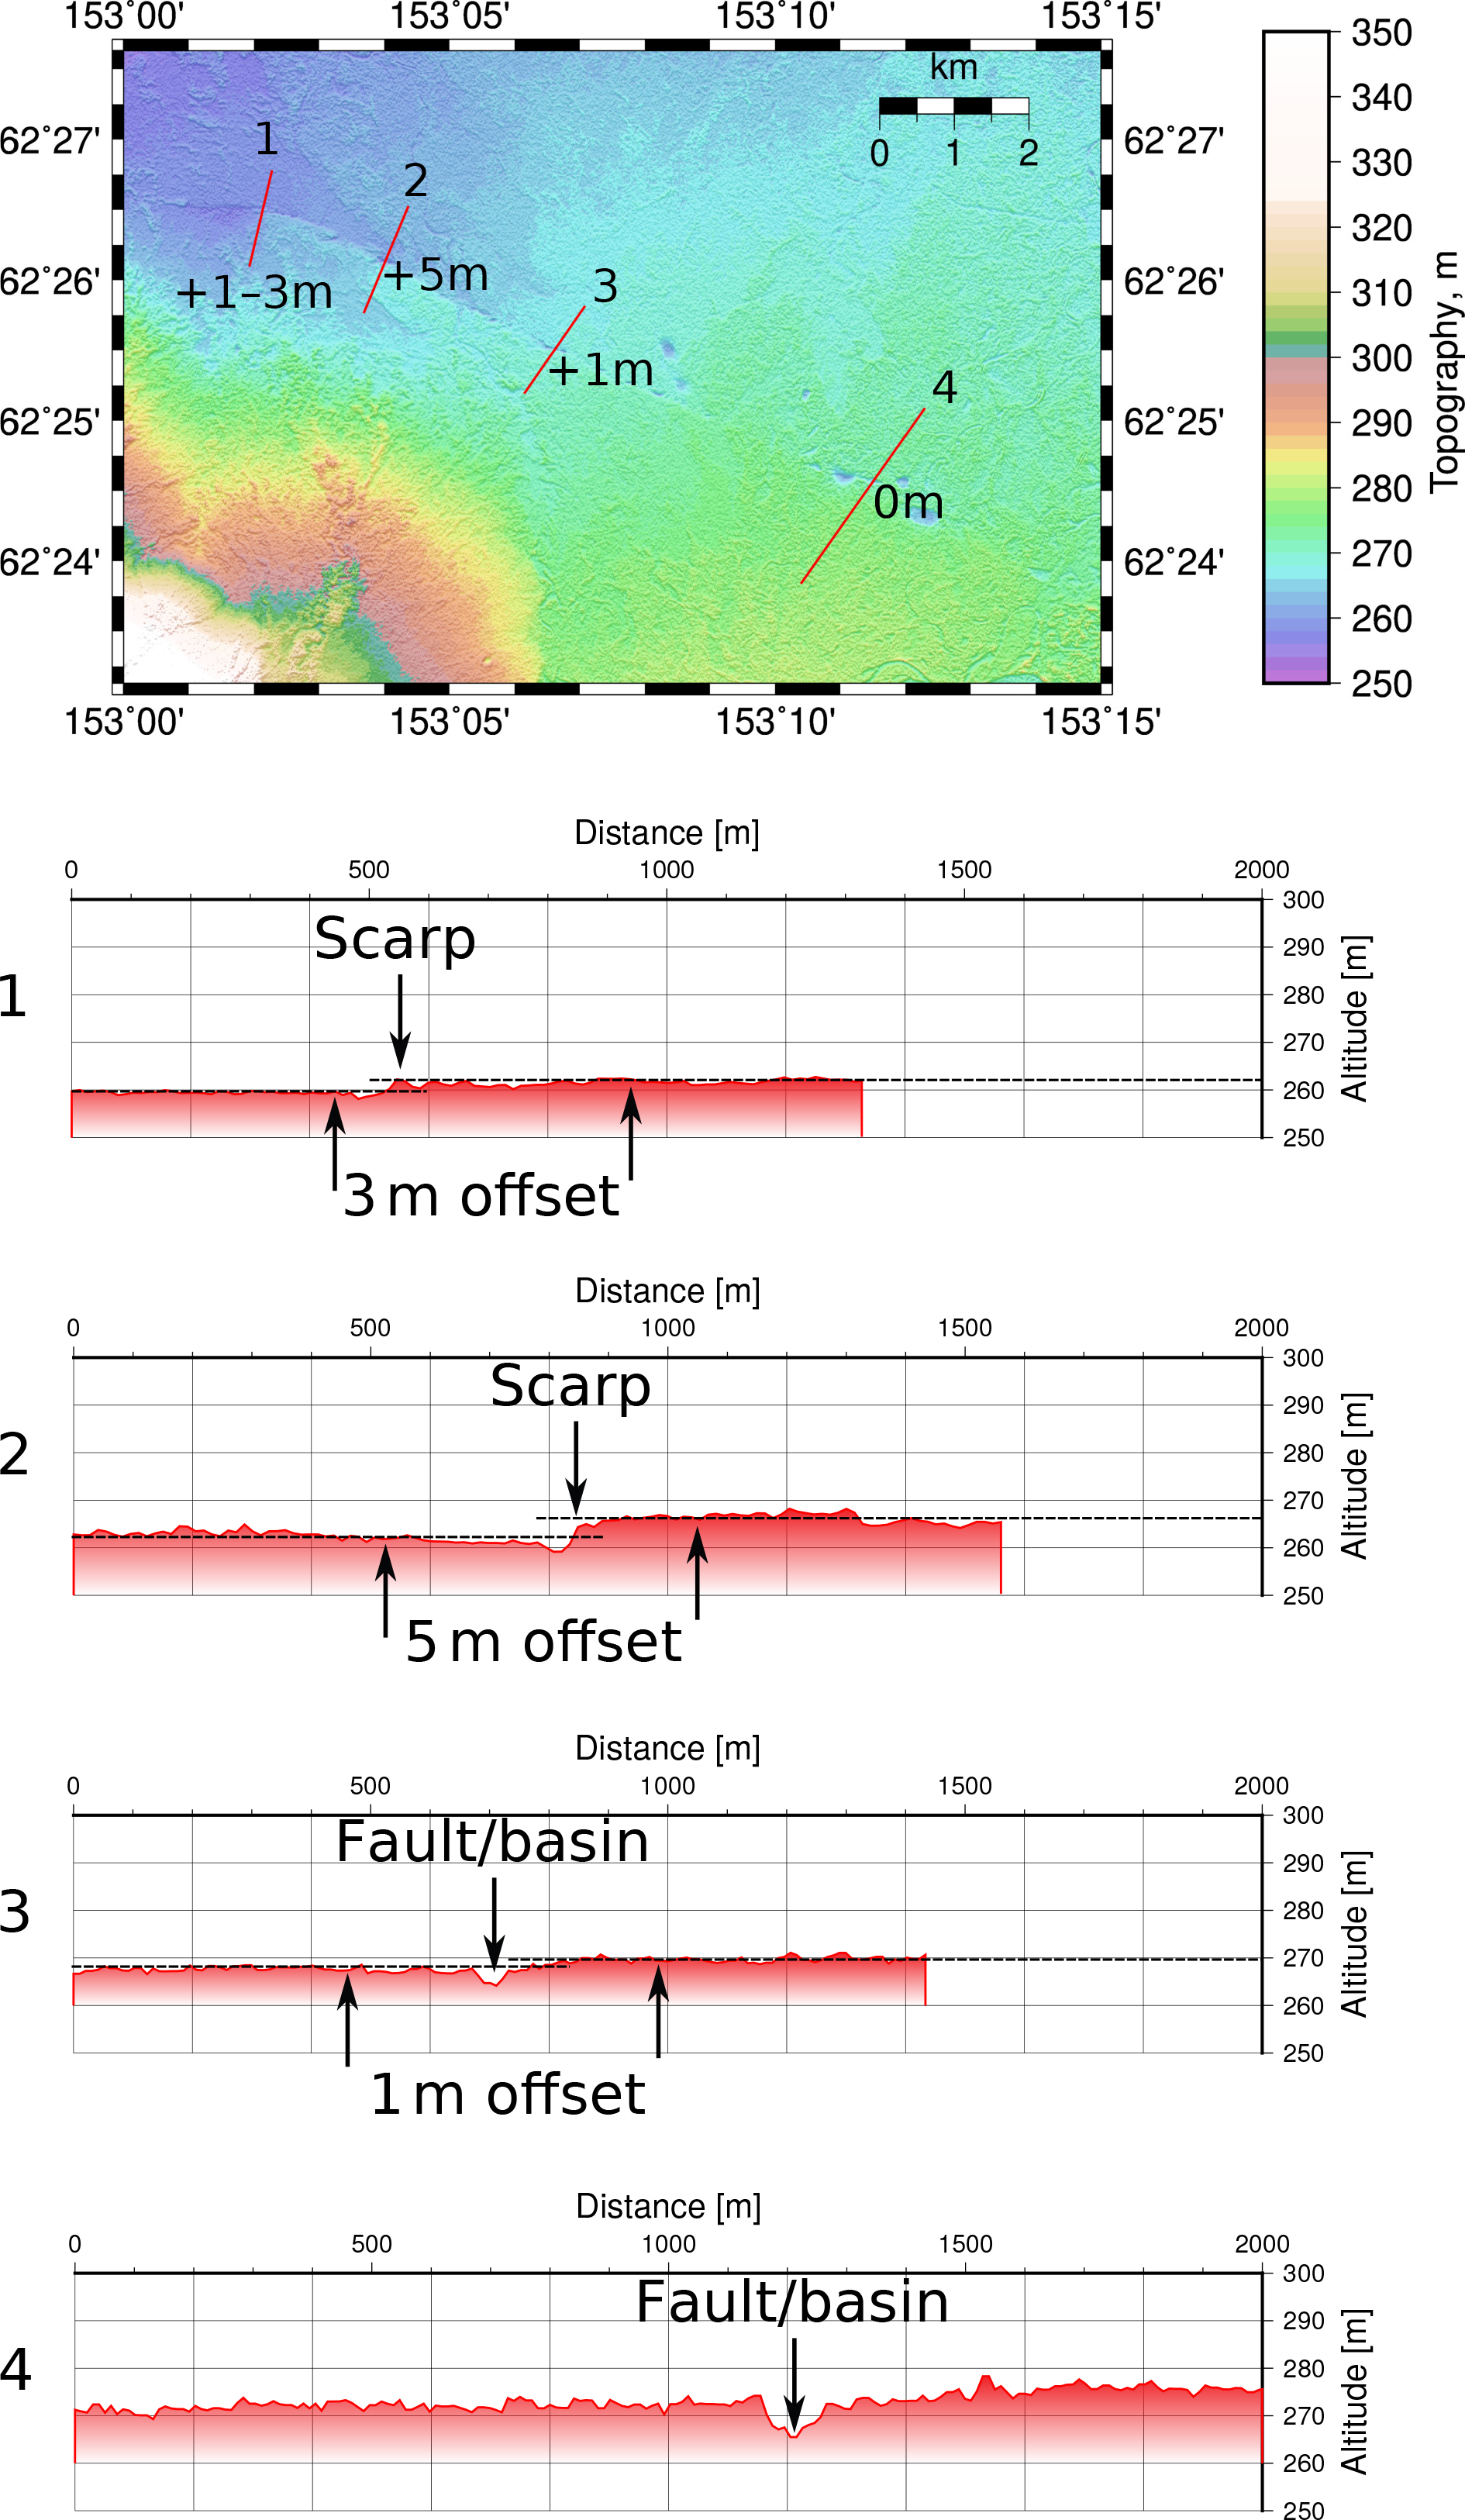 SE - The Ulakhan fault surface rupture and the seismicity of the